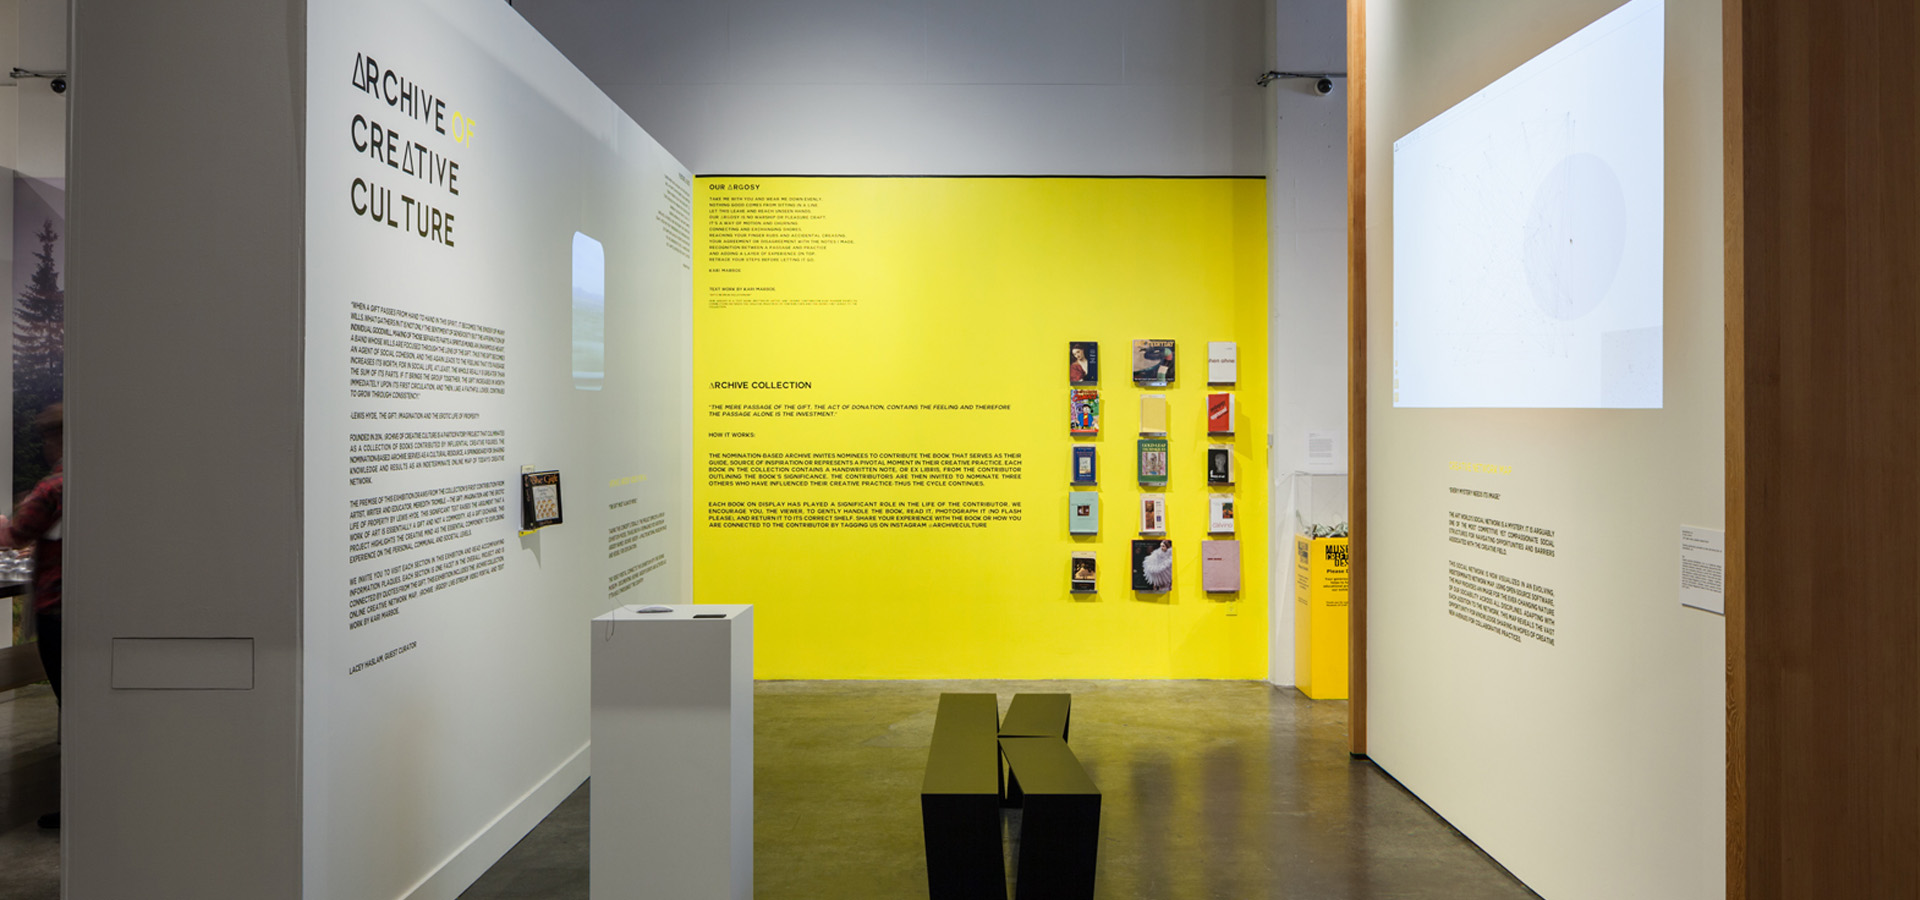 Archive of Creative Culture 1